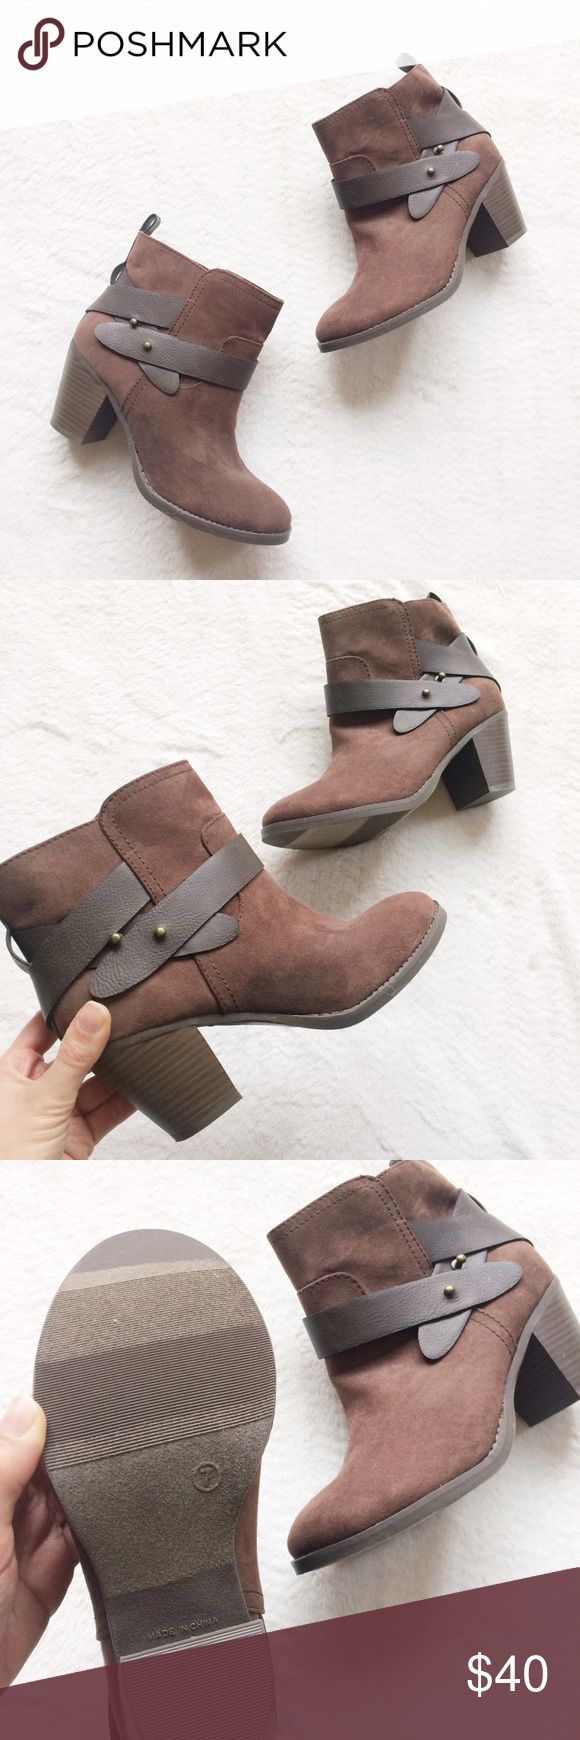 BRAND NEW Old Navy Ankle Booties Brand new & never been worn! 100% perfect condition!! Can ship same day as purchase Old Navy Shoes Ankle Boots & Booties